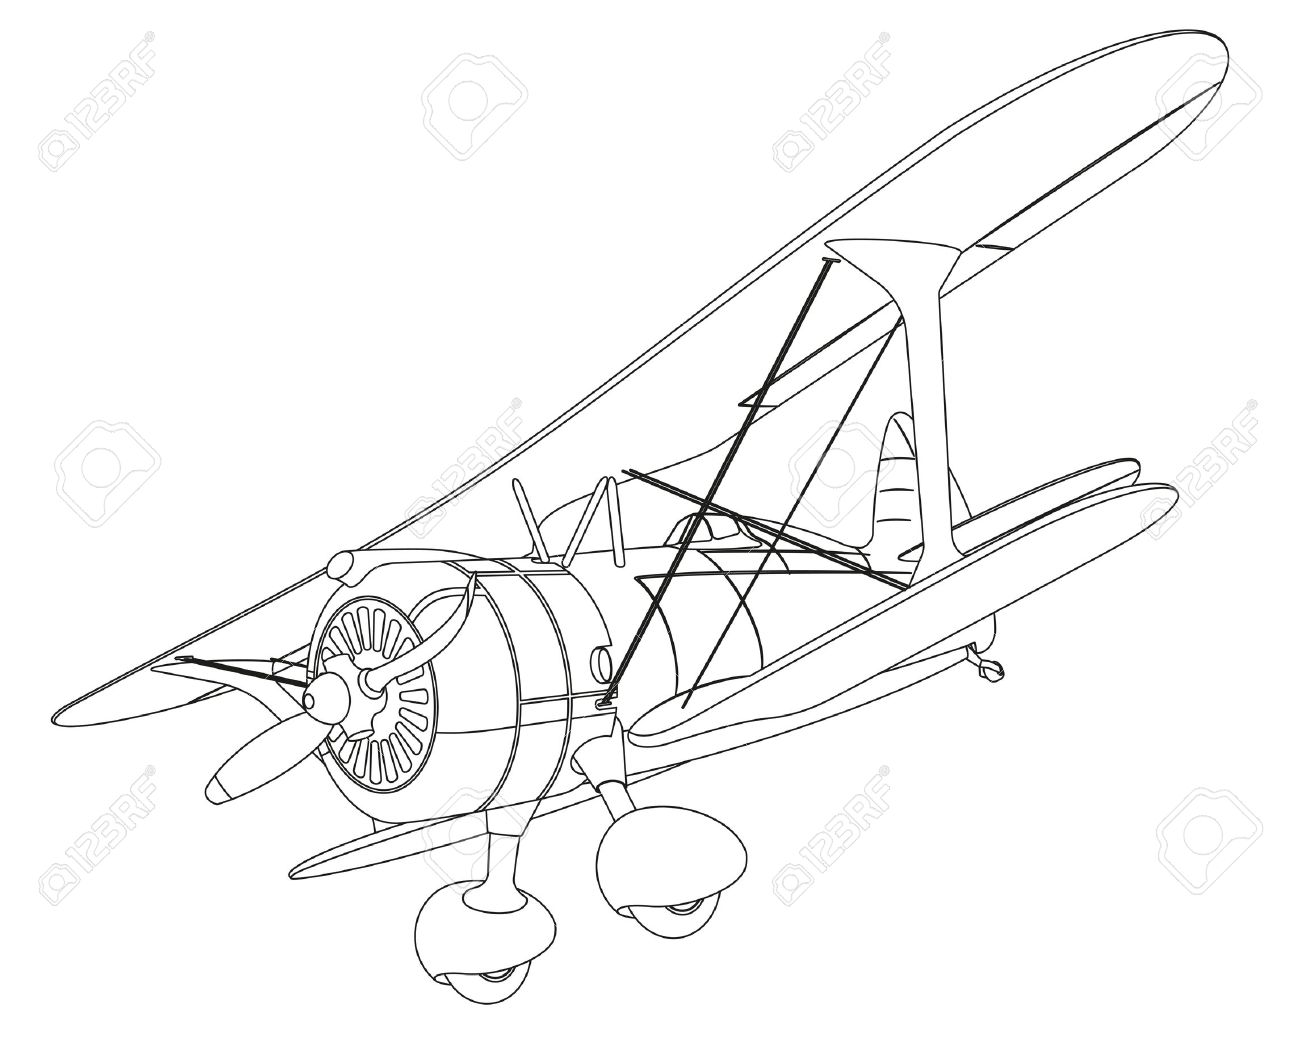 1300x1040 Plane Drawing On White Background. Illustration Clip Art Royalty